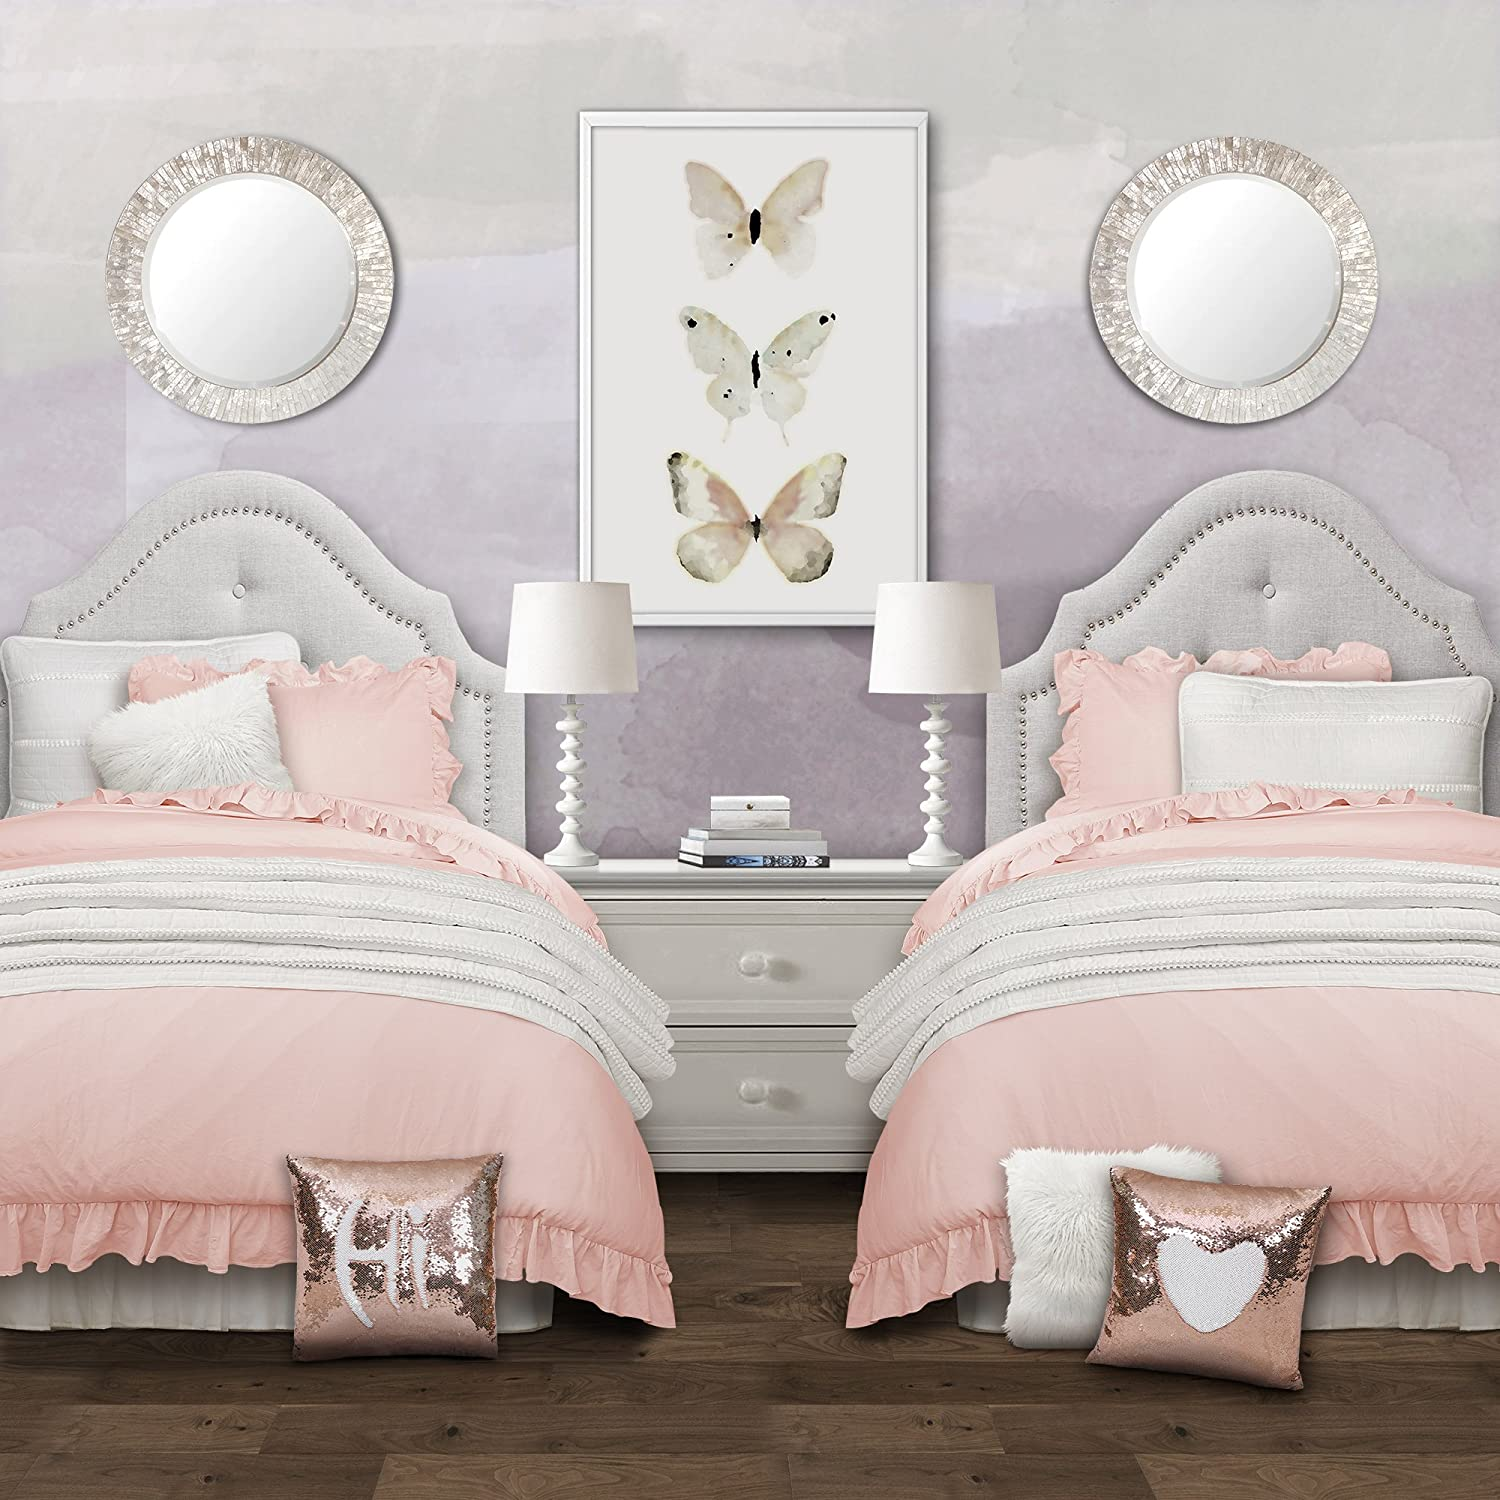 Lush Decor Reyna Comforter Ruffled 3 Piece Bedding Set with Pillow Shams, Full Queen, Blush